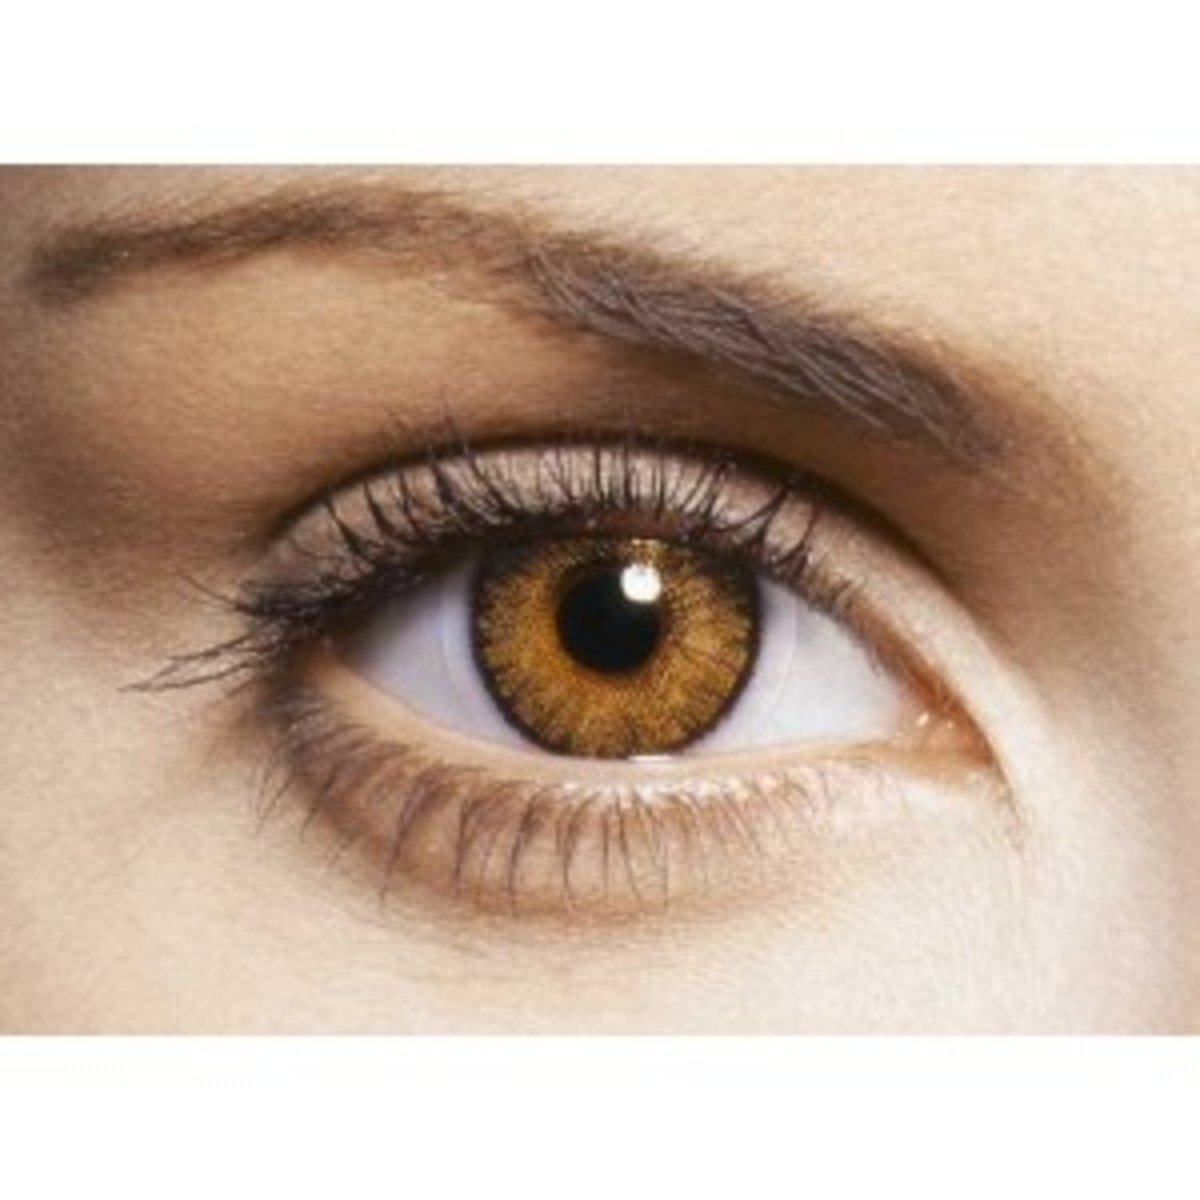 Honey colored contact lenses